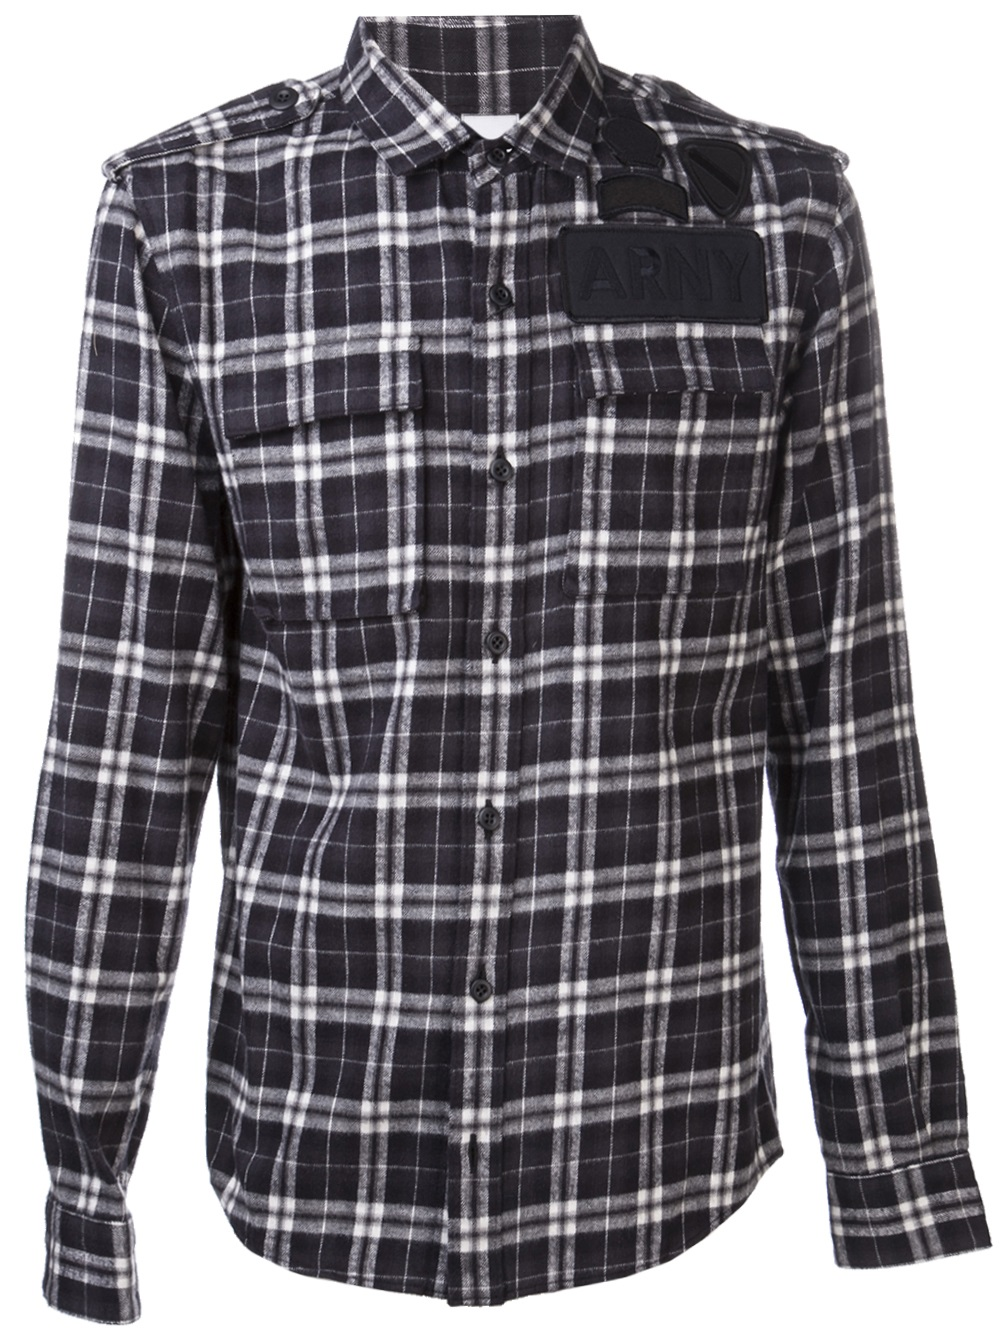 ar srpls plaid flannel shirt in black for men lyst